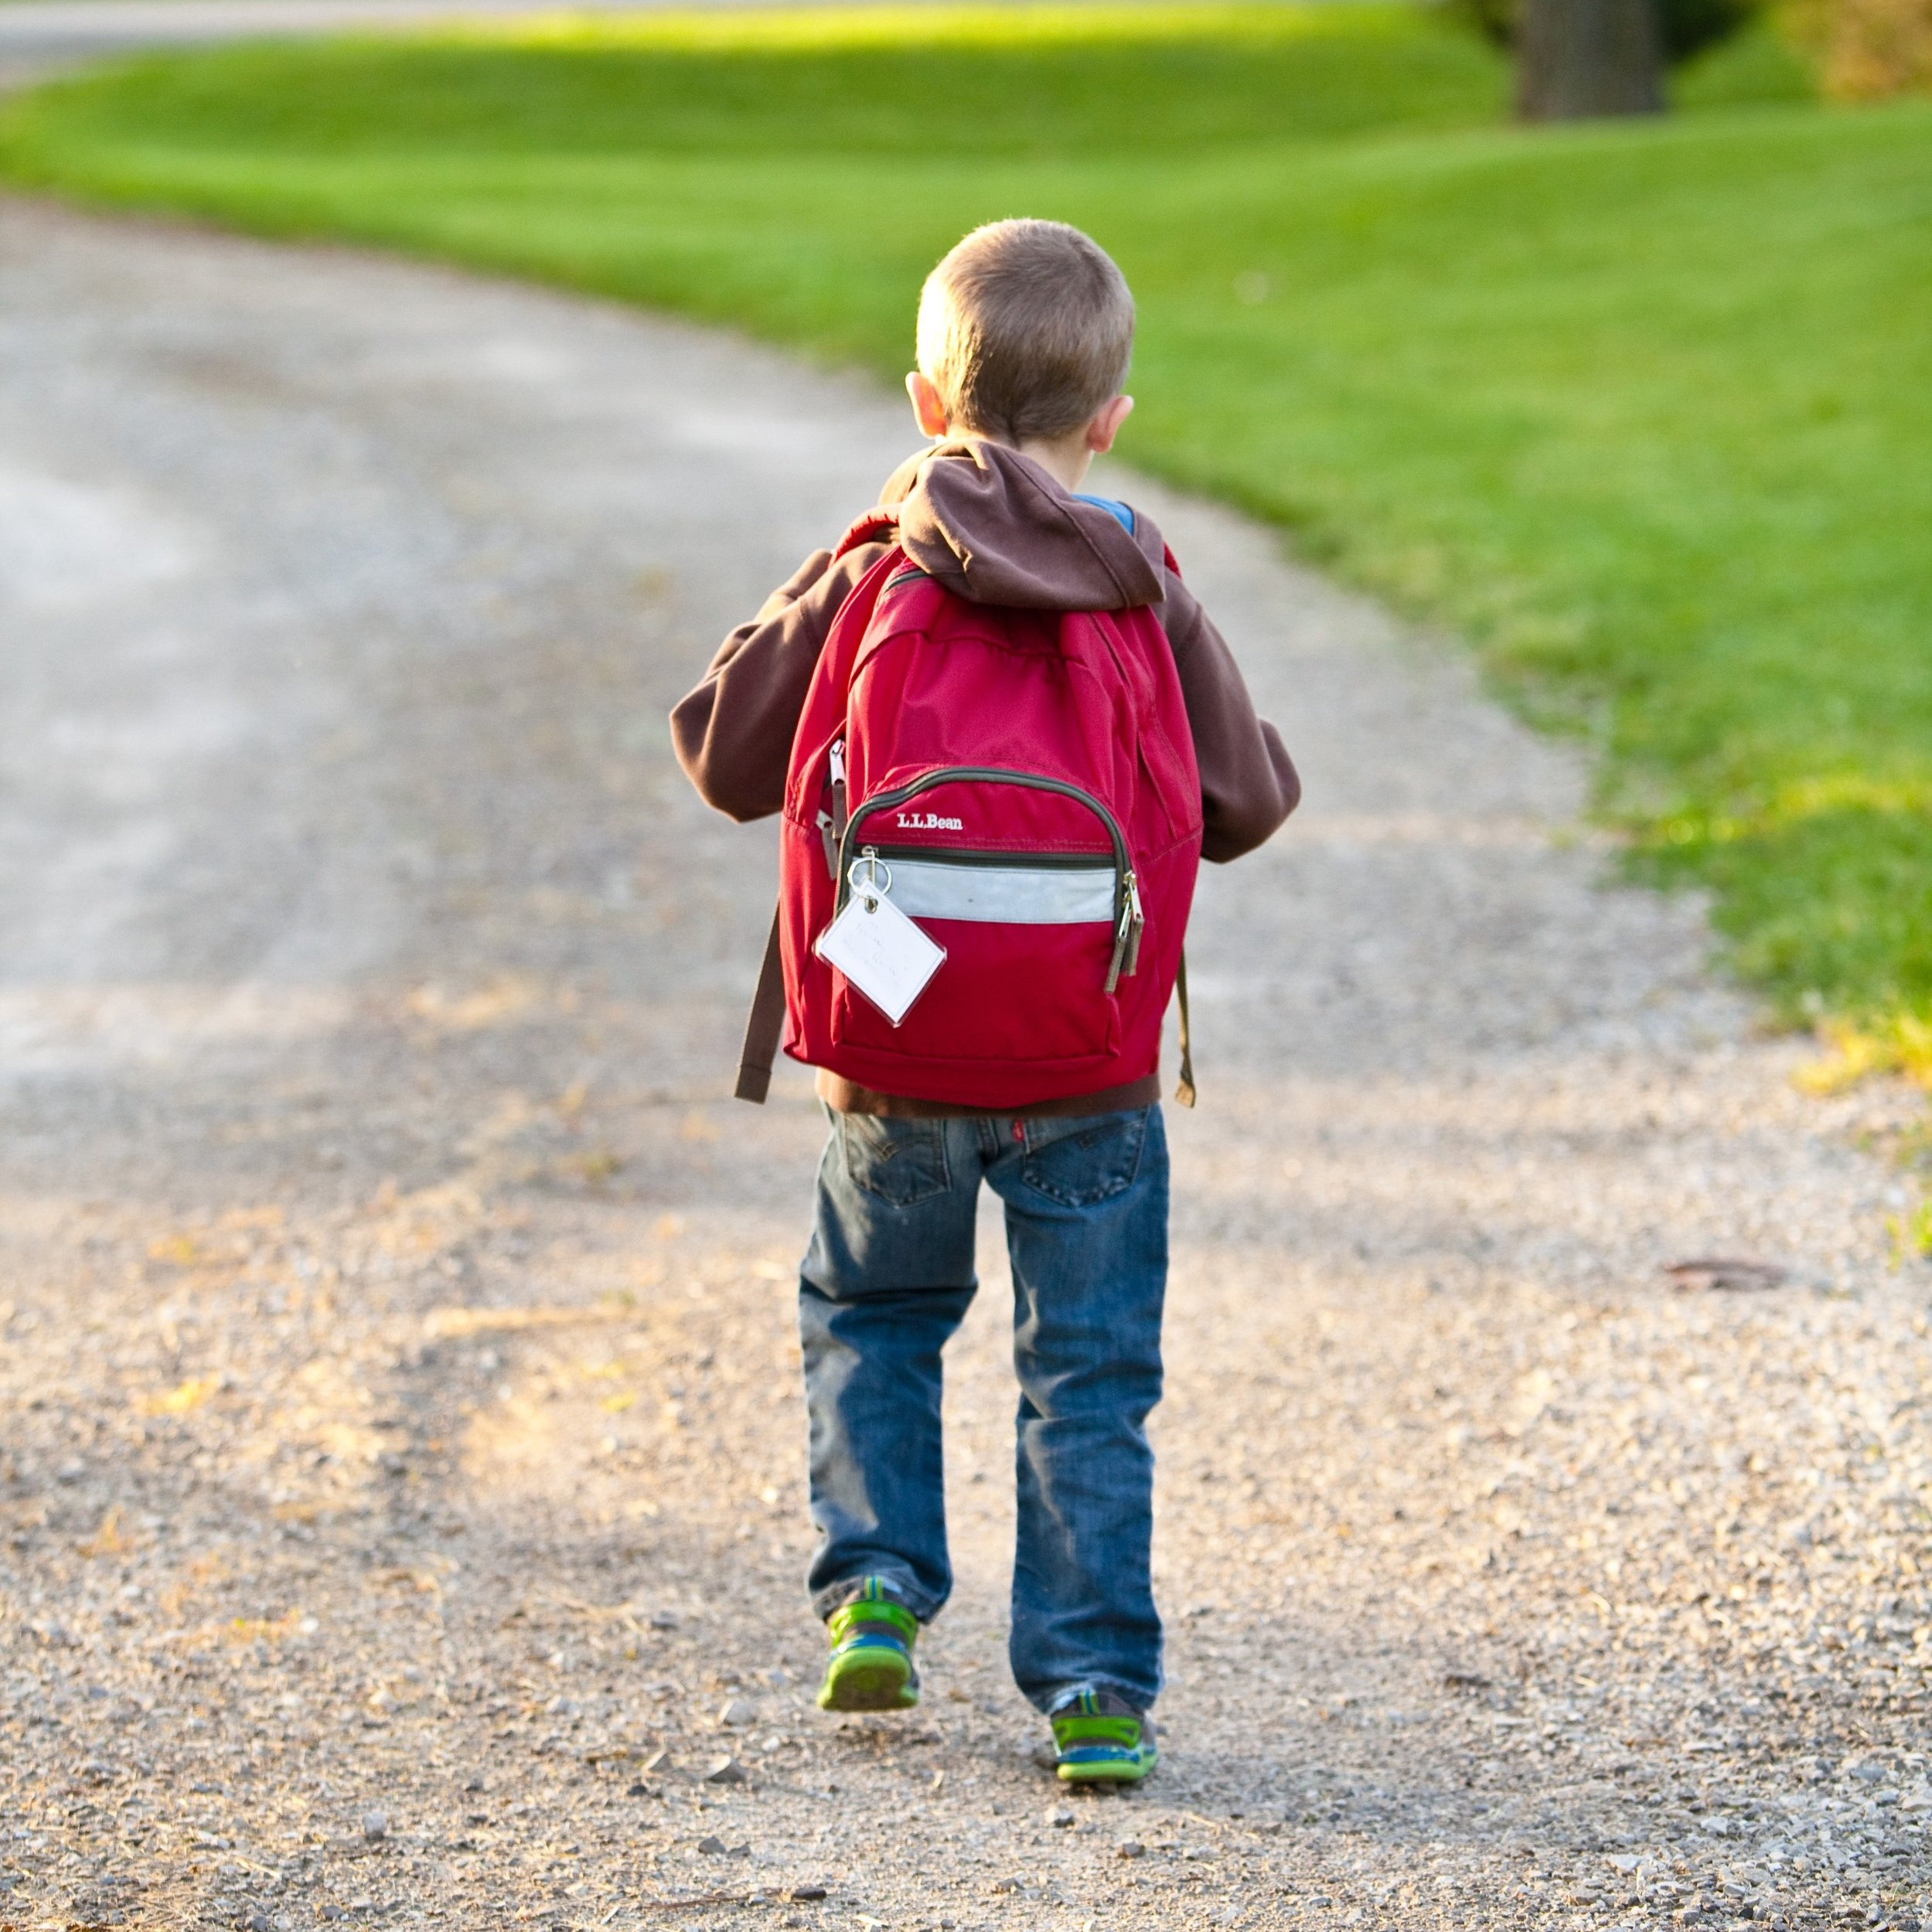 Back+to+School+tips+for+wearing+a+backpack